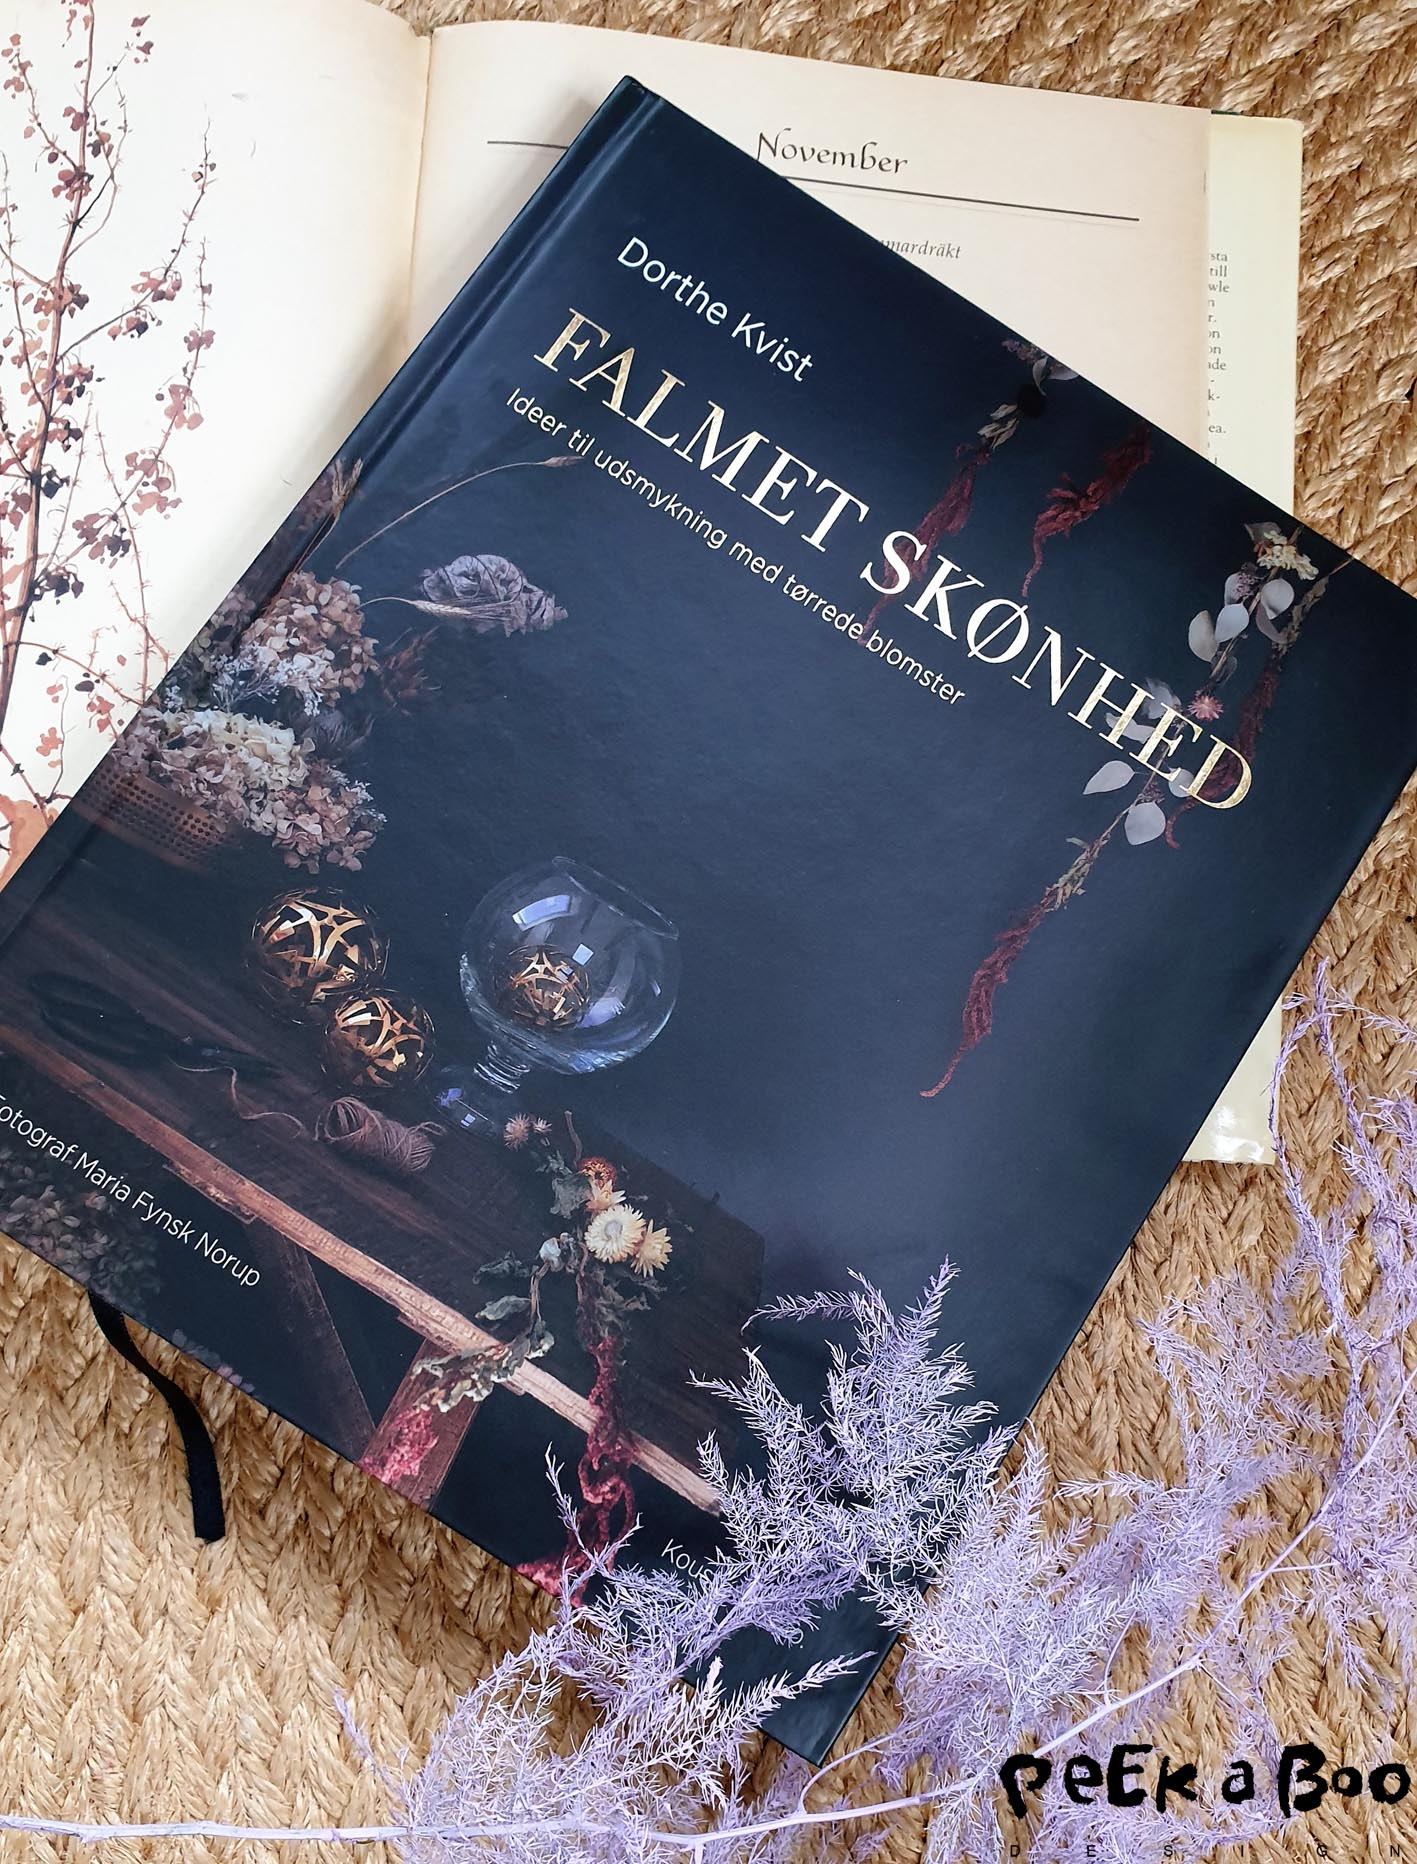 The book about the dried flowers and how to use them.